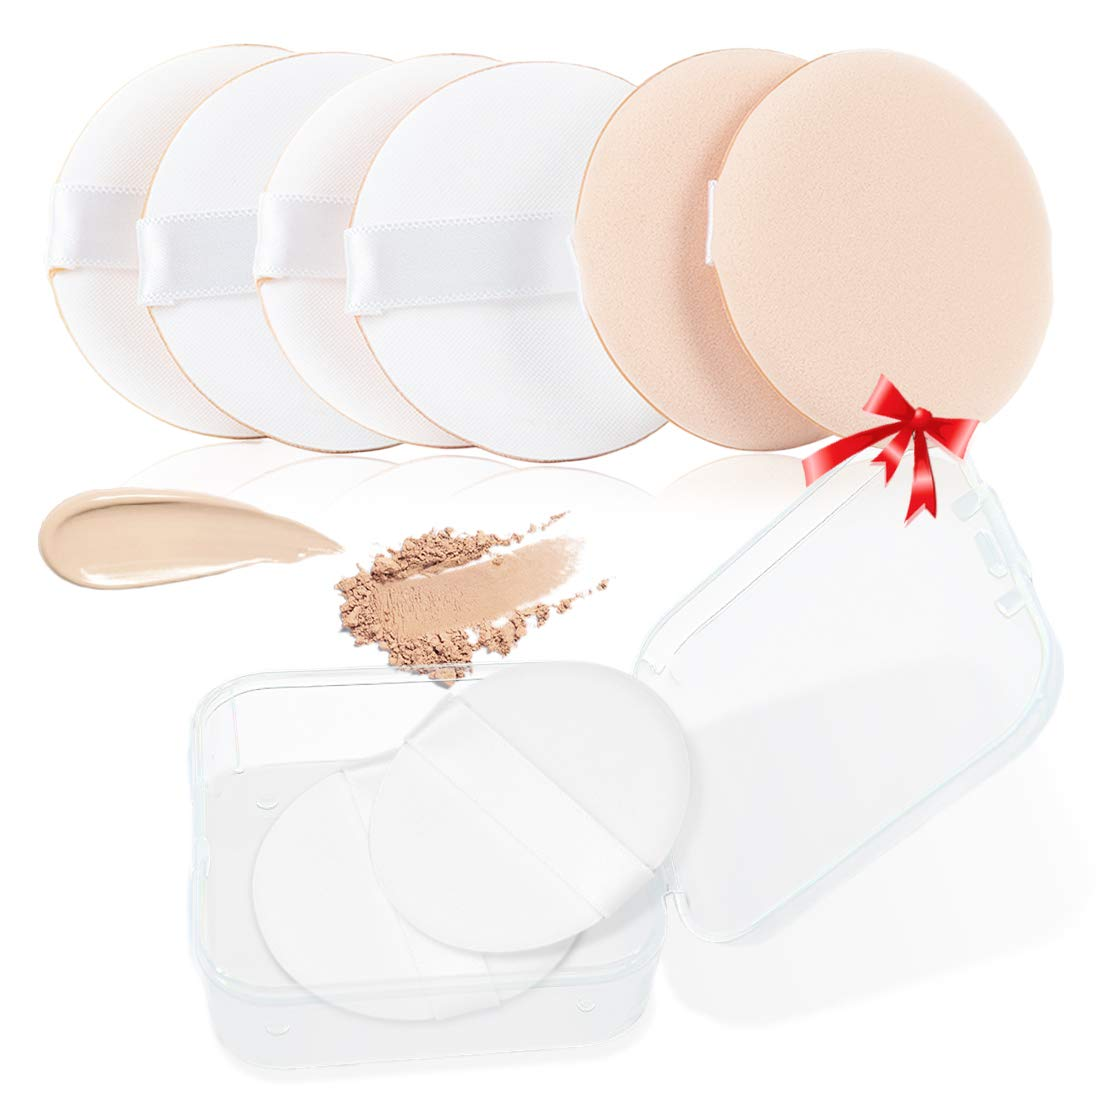 Kalevel 8pcs Air Cushion Puff Round Makeup Powder Sponge Small Cosmetic Puff Foundation Sponge Applicators BB Scream Face Powder Puff Baby Powder Sponge with Box for Dry & Wet Use (Skin Color)